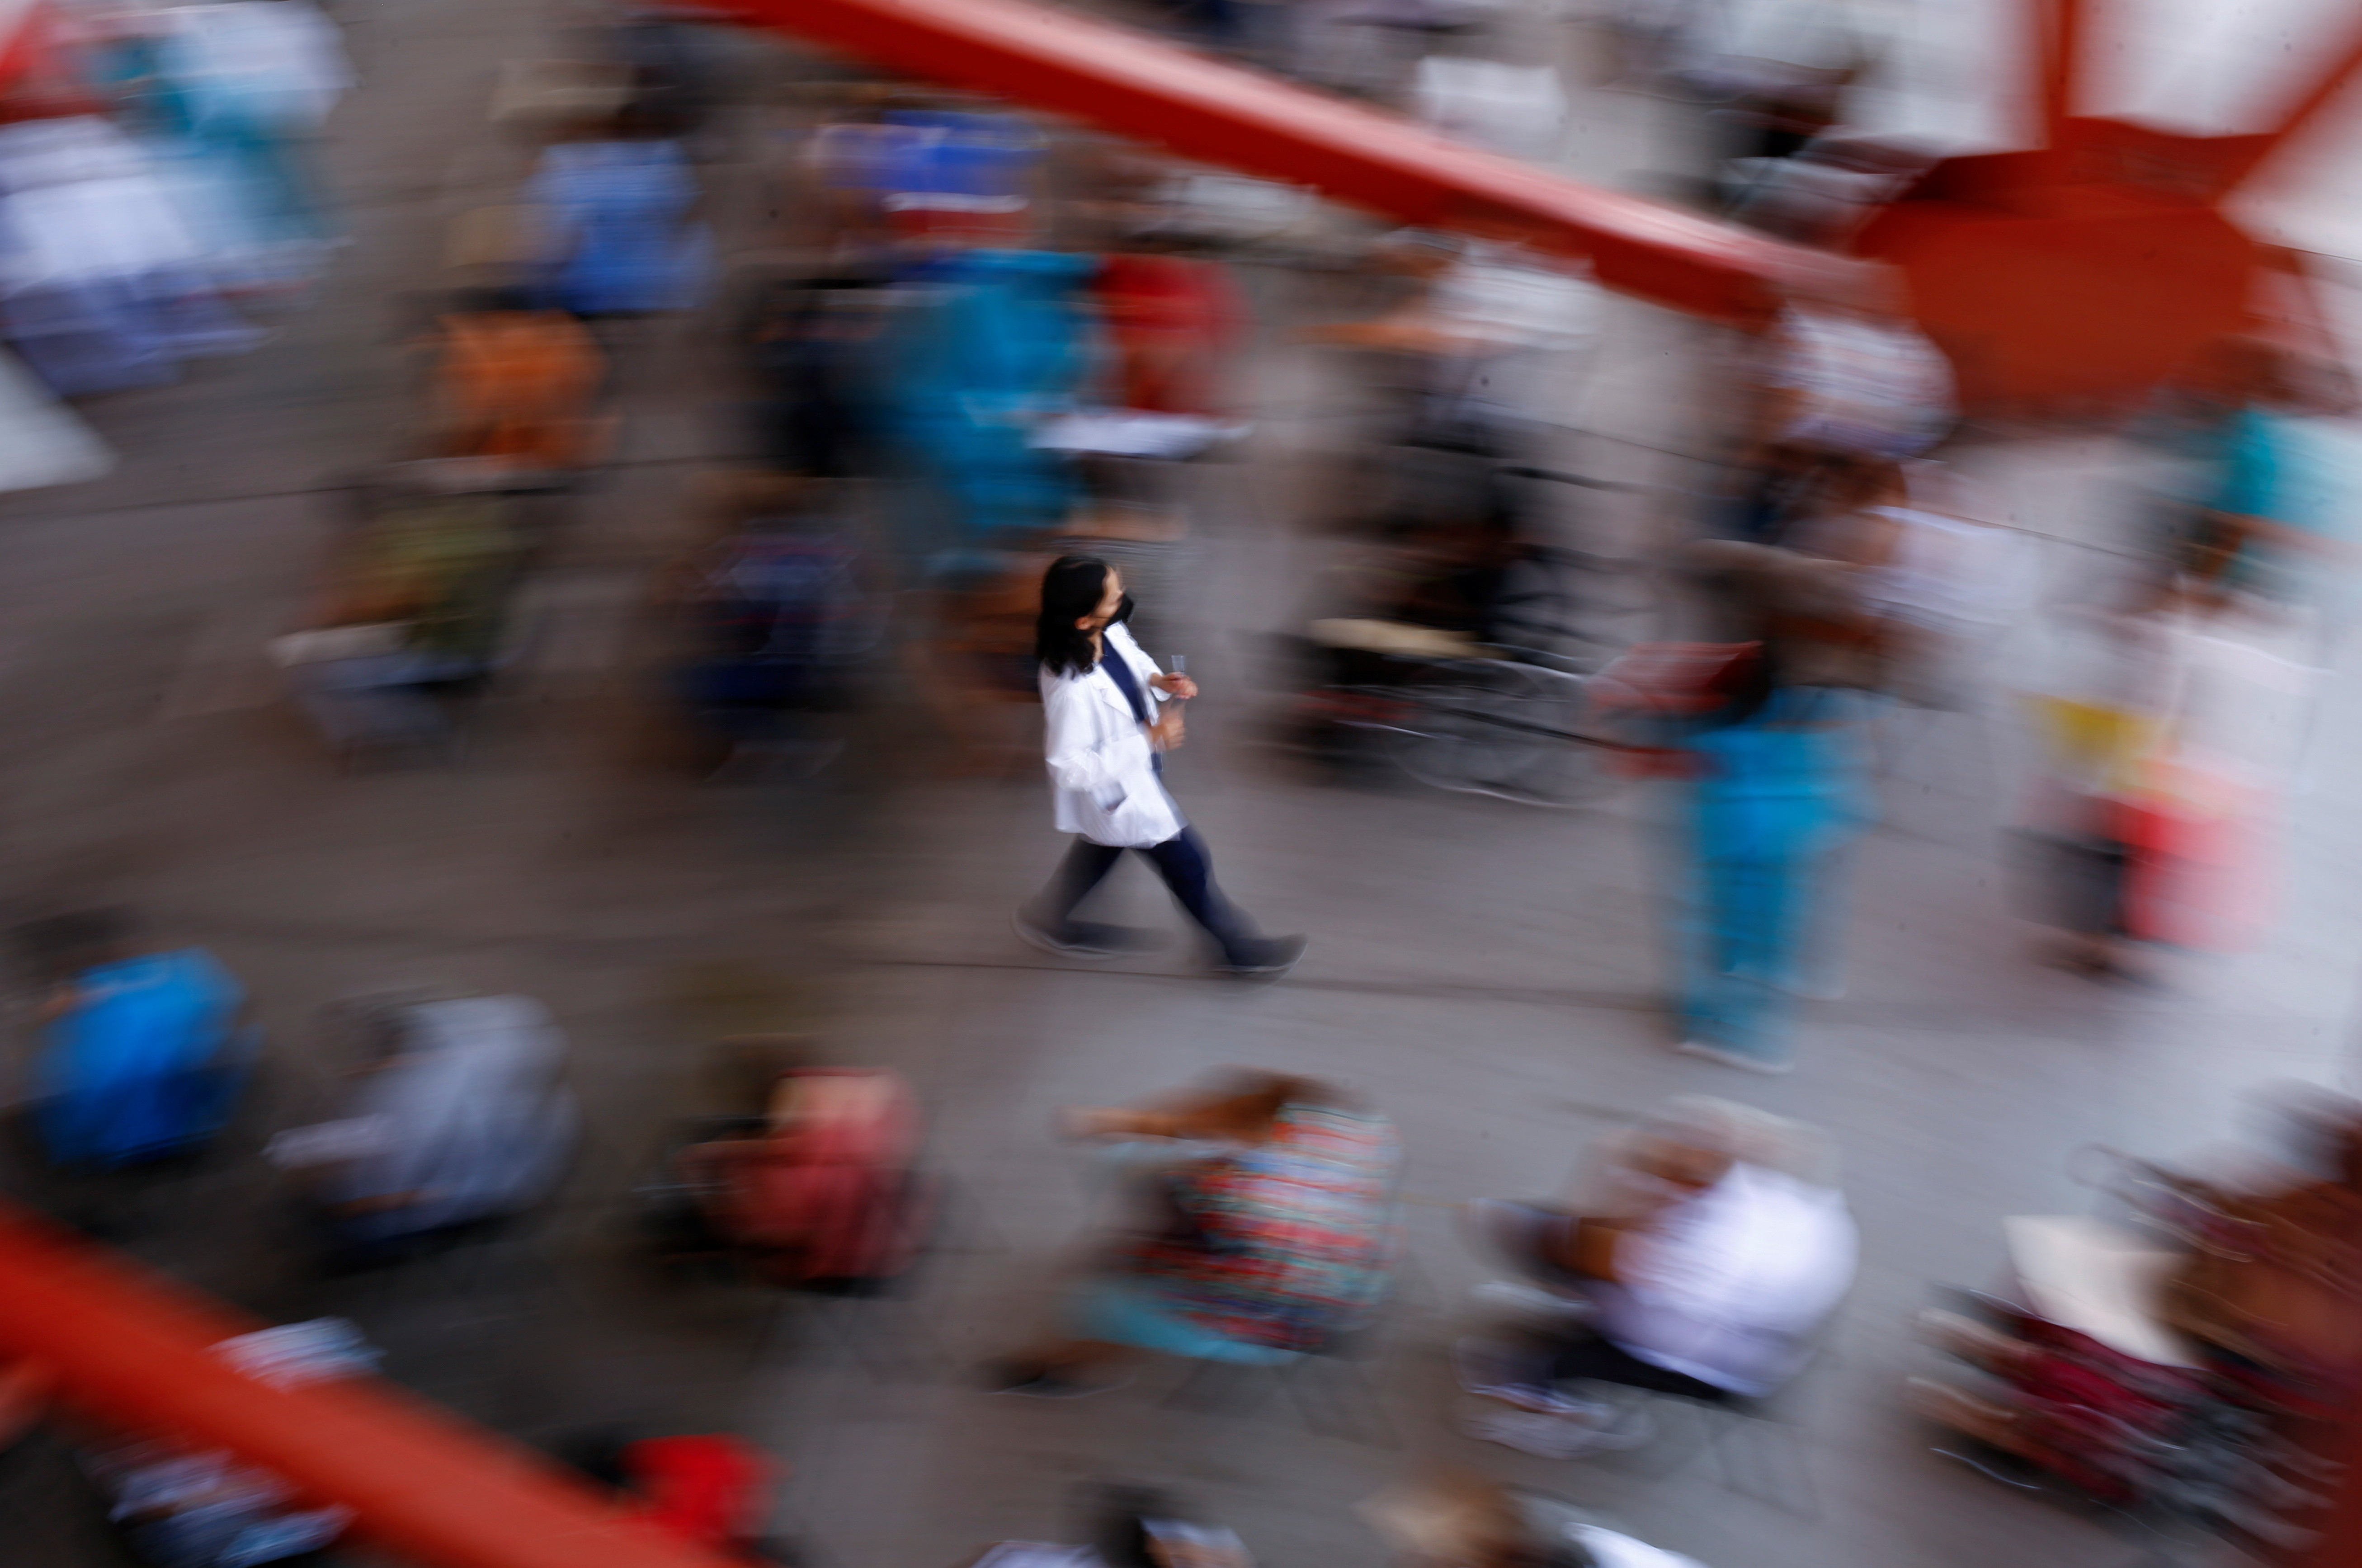 A health worker walks with a dose of the Pfizer-BioNTech coronavirus disease (COVID-19) vaccine, during a mass vaccination programme for people over 50 years of age at a baseball stadium in Ciudad Juarez, Mexico June 22, 2021. REUTERS/Jose Luis Gonzalez - RC2S5O9ZSYSN